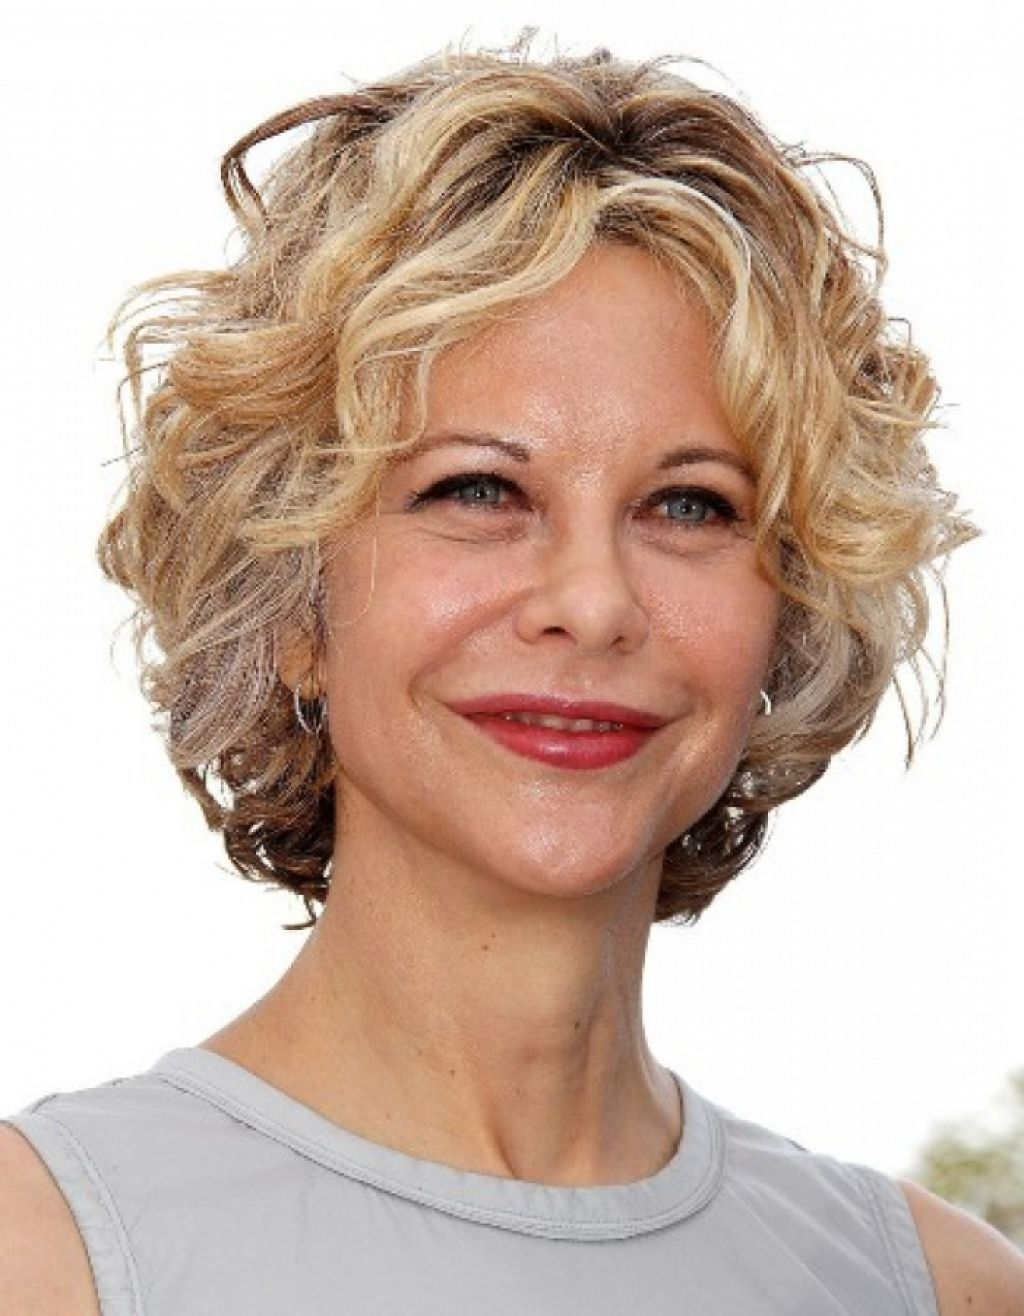 hairstyles for women over 60 - google search | hair today